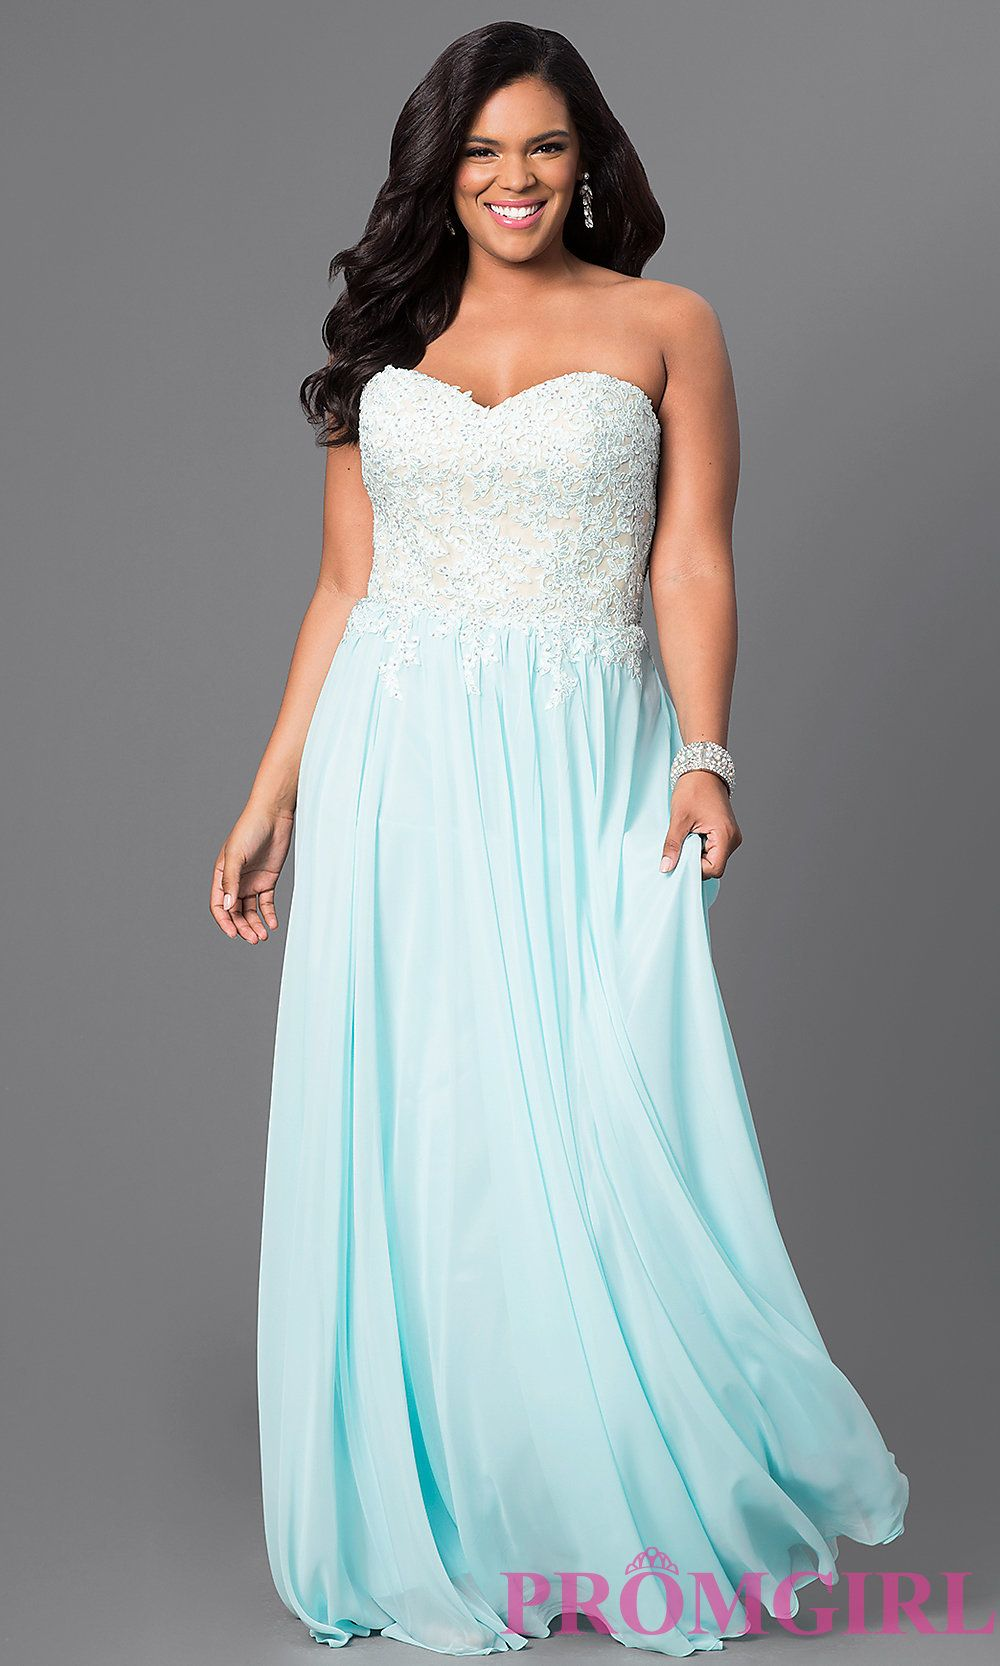 This floor length strapless prom dress has a lace embellished bodice